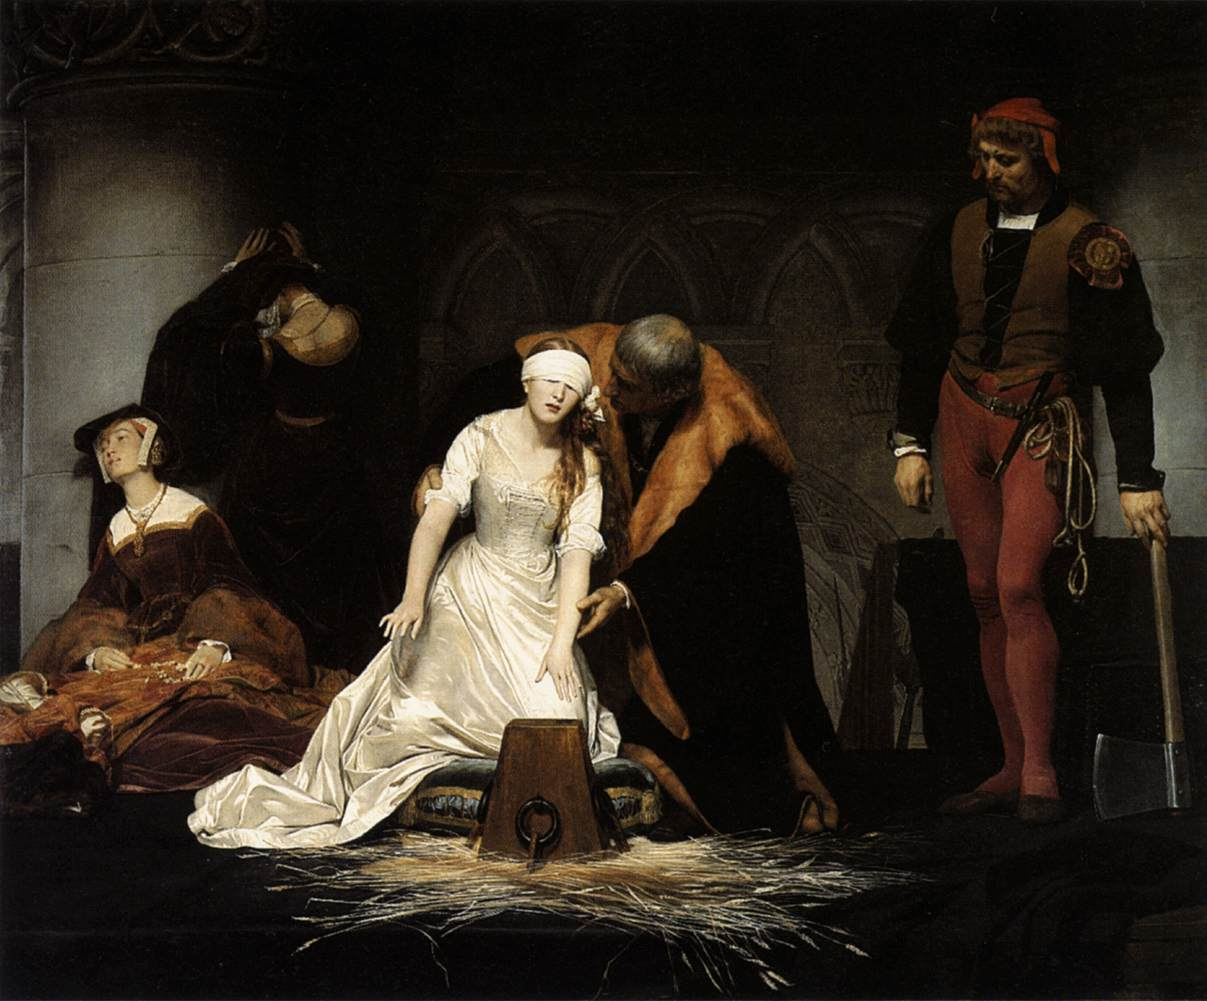 Detail view of Hippolyte (Paul) Delaroche's The Execution of Lady